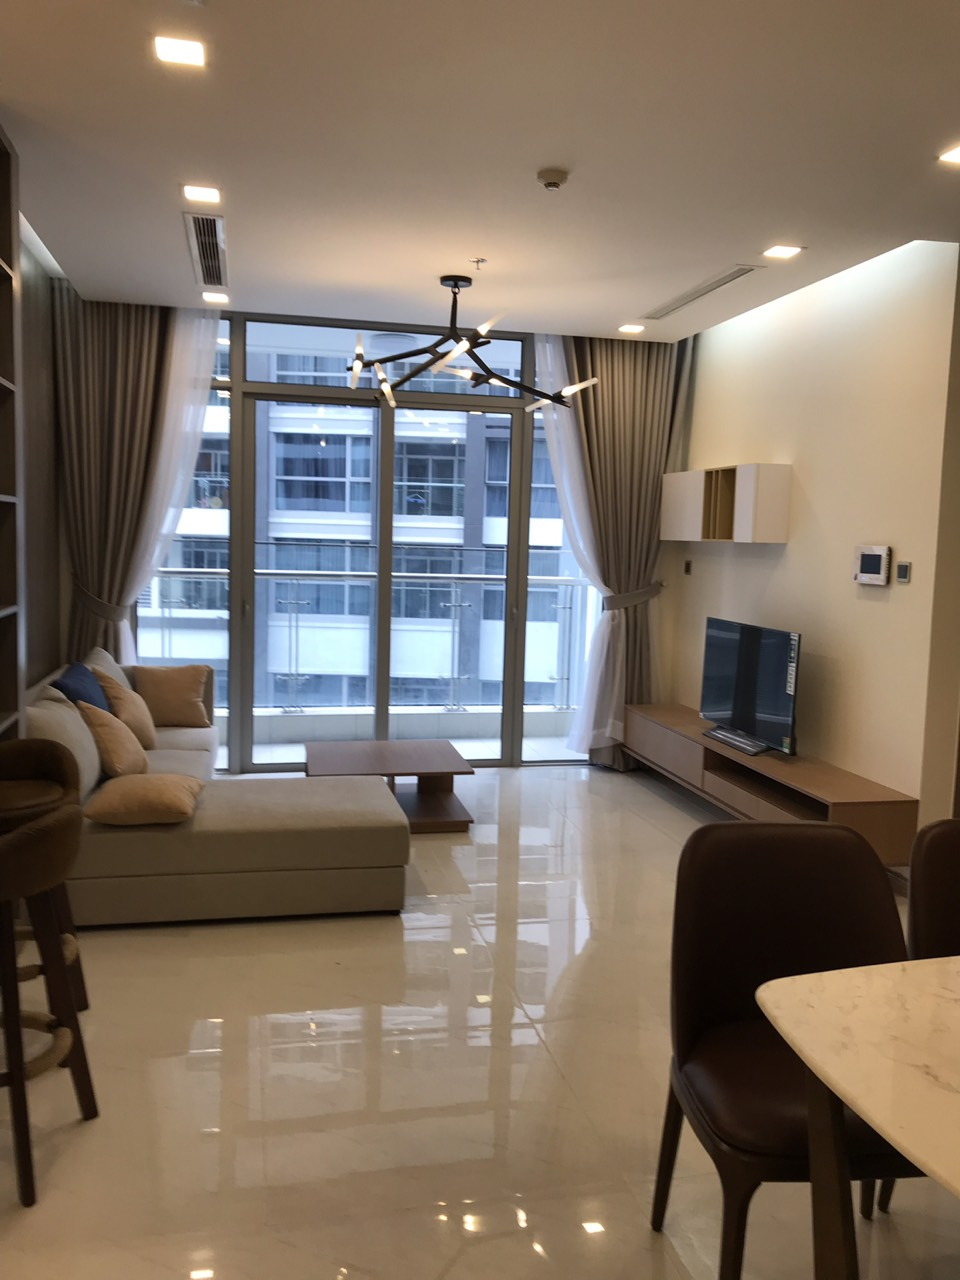 2 bedrooms apartment for rent in vinhomes central park for 2 bedroom apartments for rent